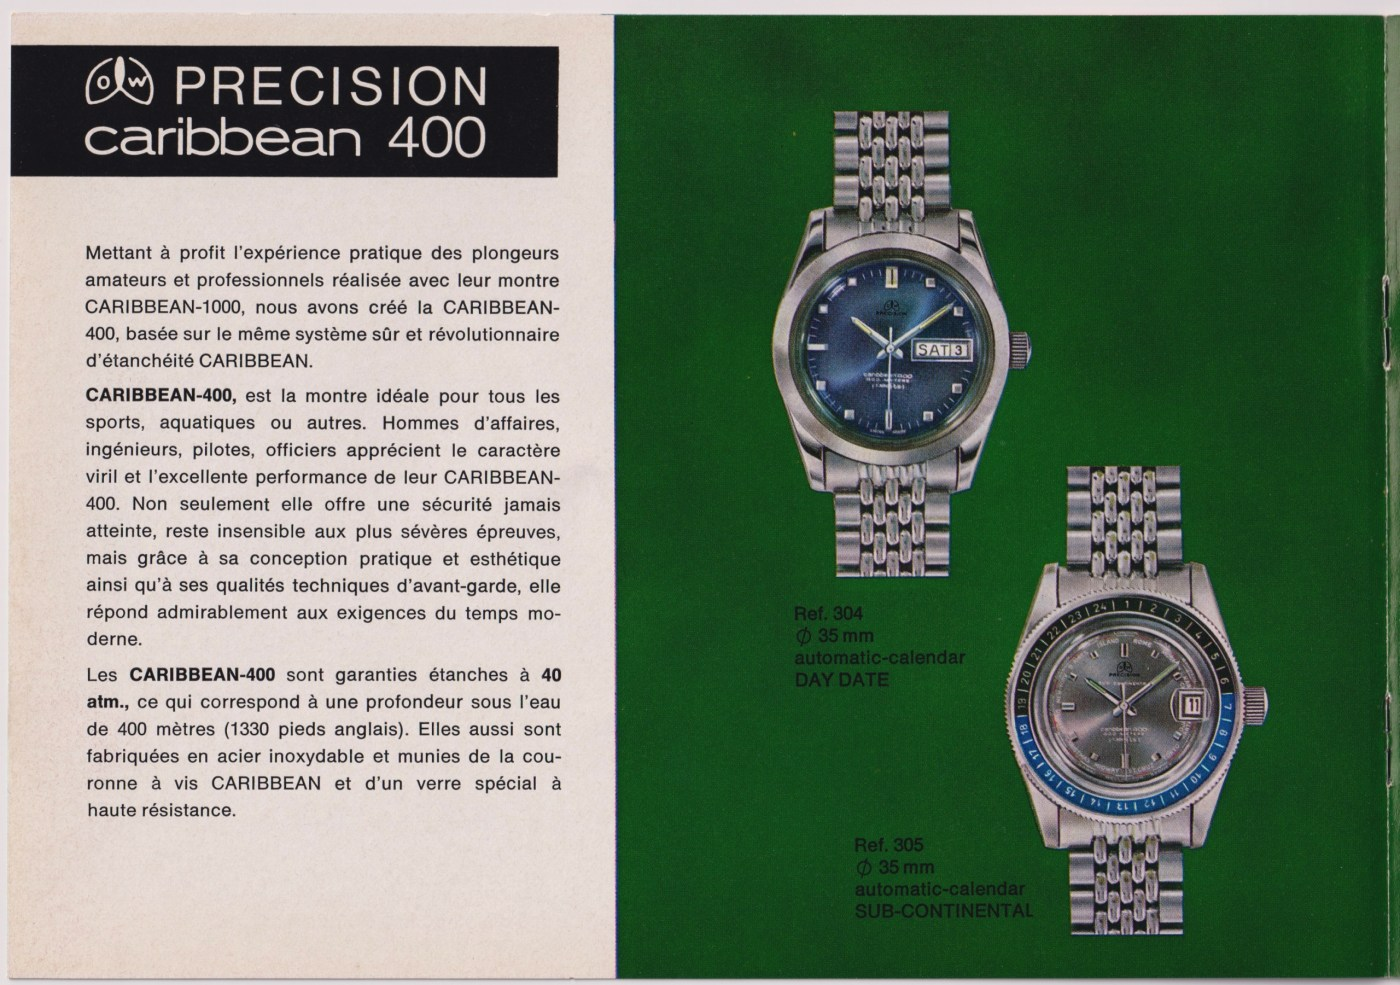 Precision Caribbean 400 vintage ad by Ollech and Wajs